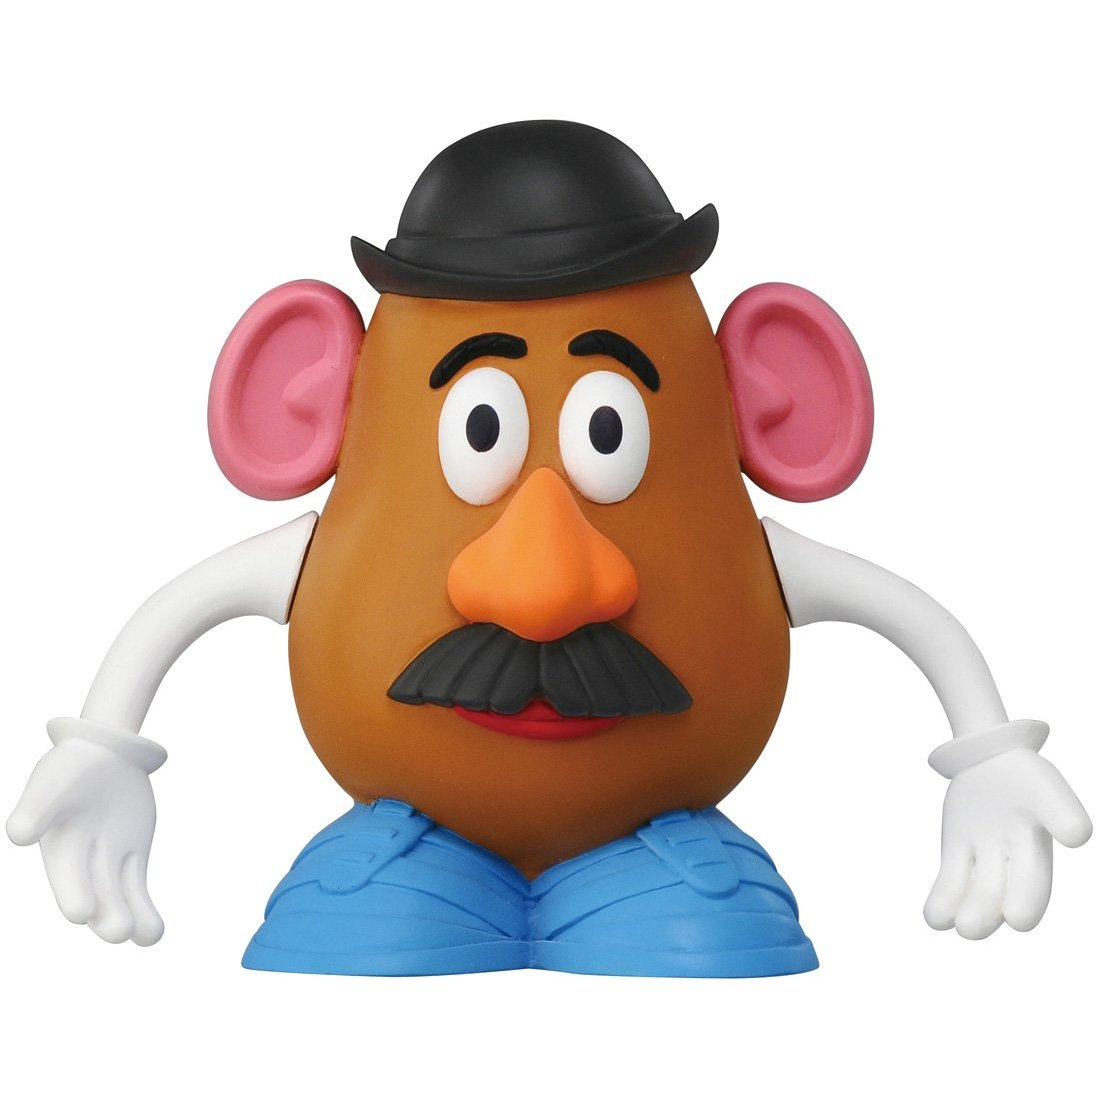 Mr Potato Head Clipart-Mr Potato Head Clipart-18